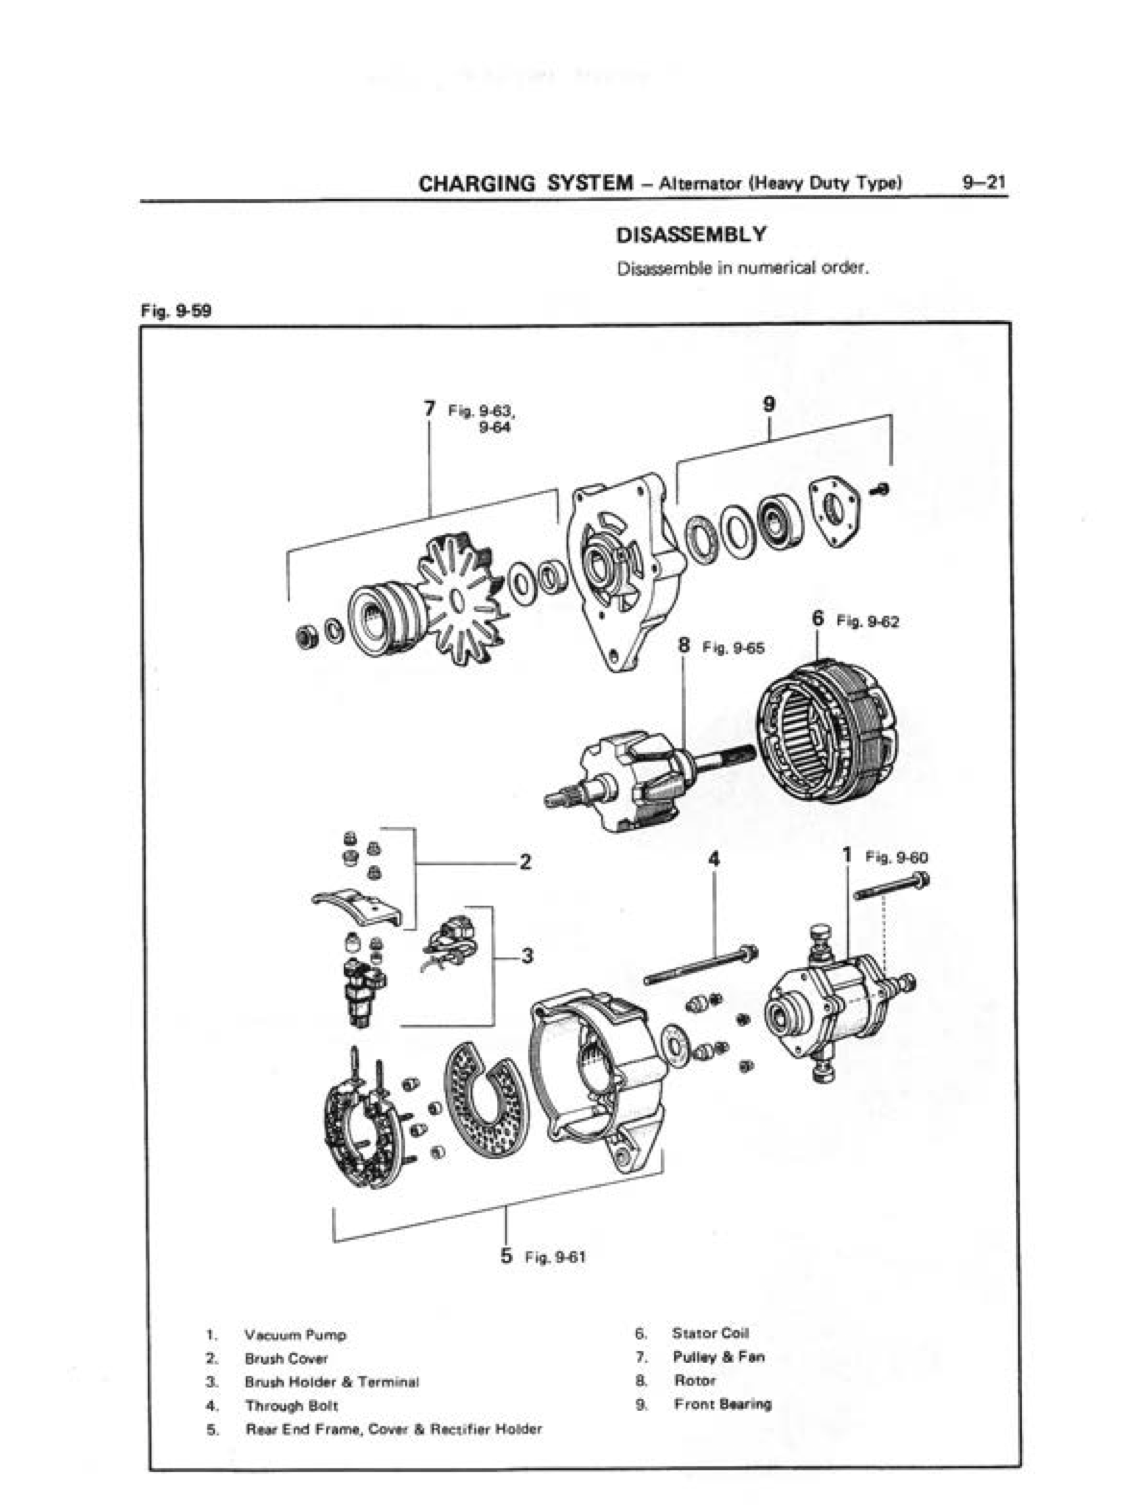 Toyota 5l diesel engine manual pdf